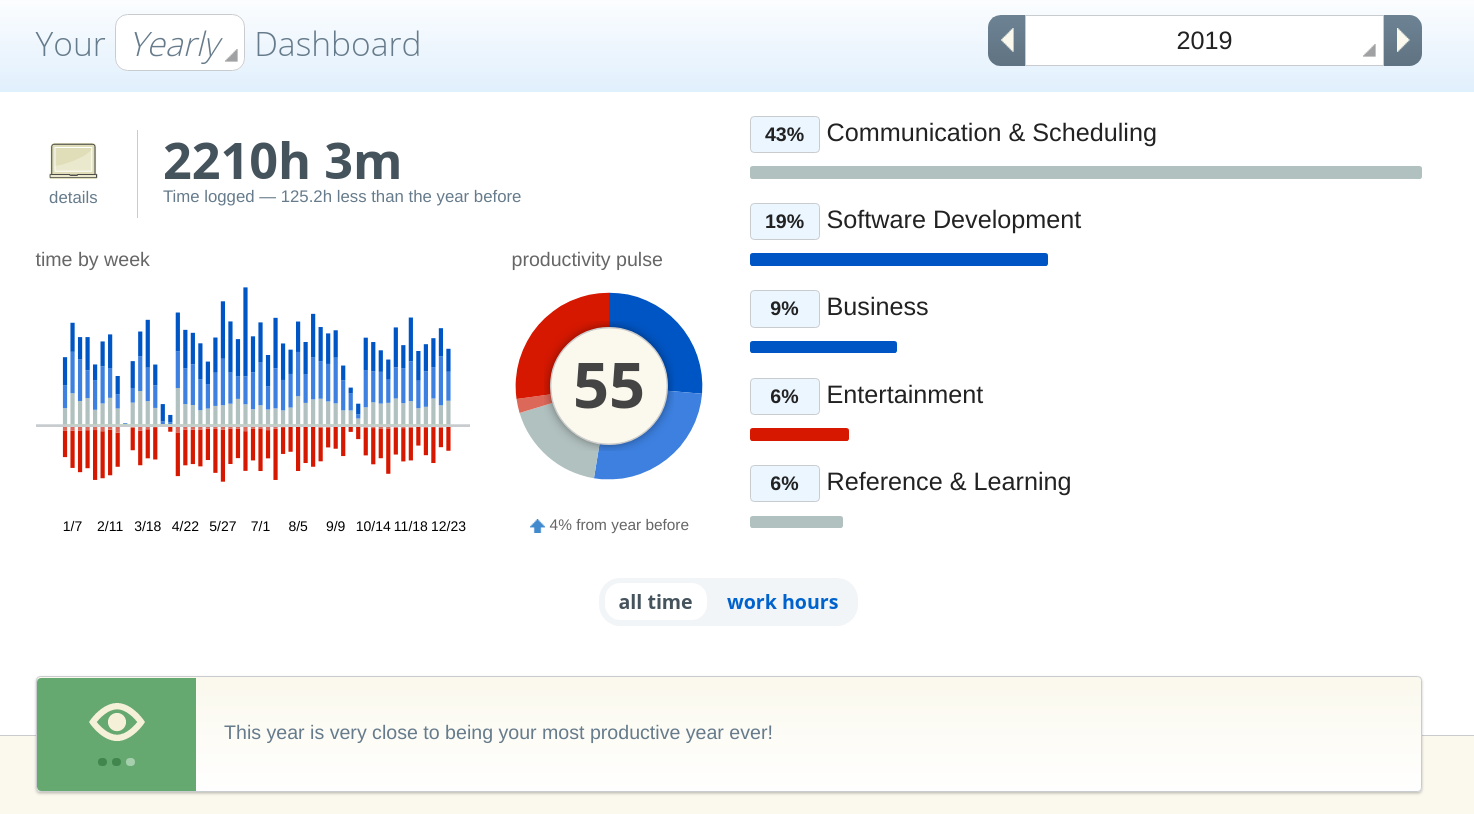 The rescuetime dashboard showing metrics for the entire year. The productivity pulse is 55